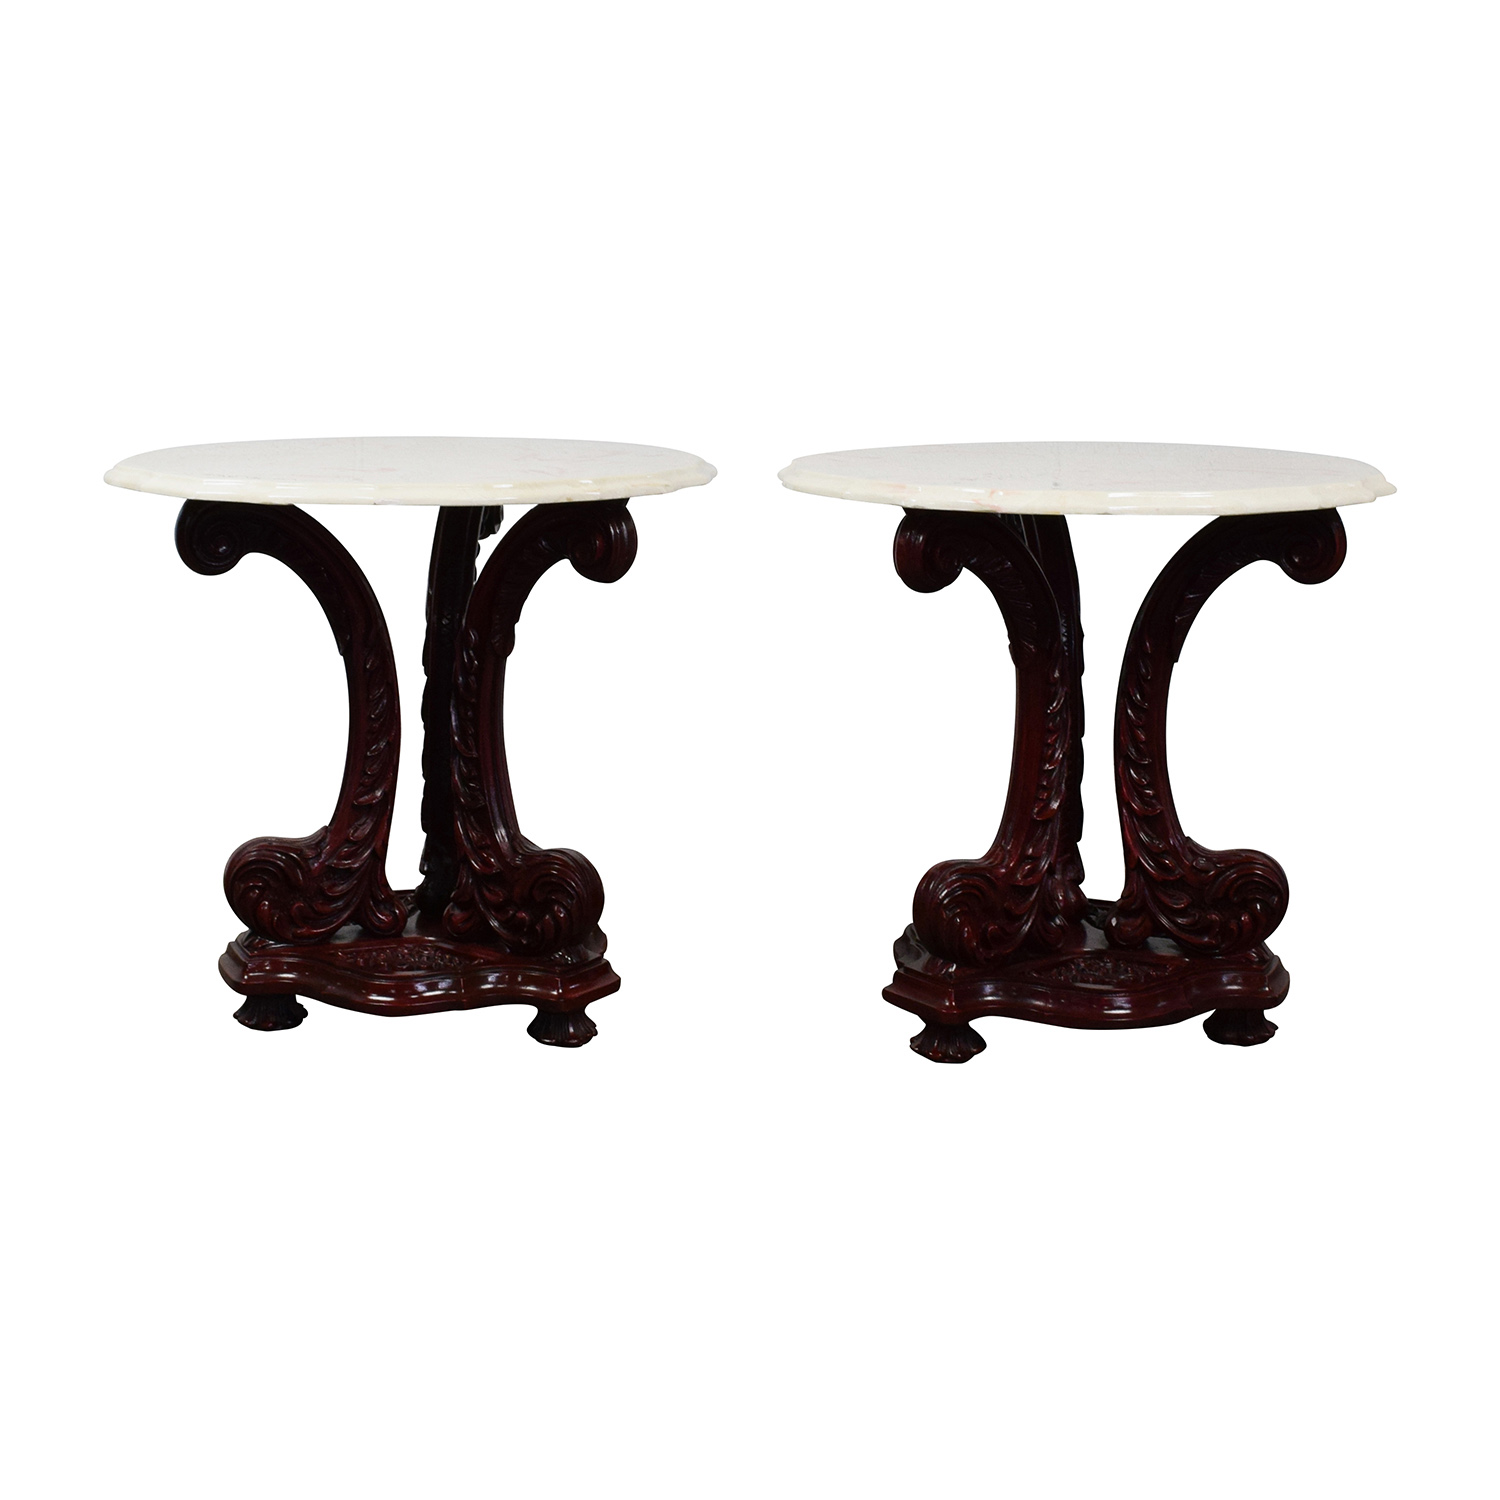 Marble Top End Tables with Burgundy Wood Base coupon